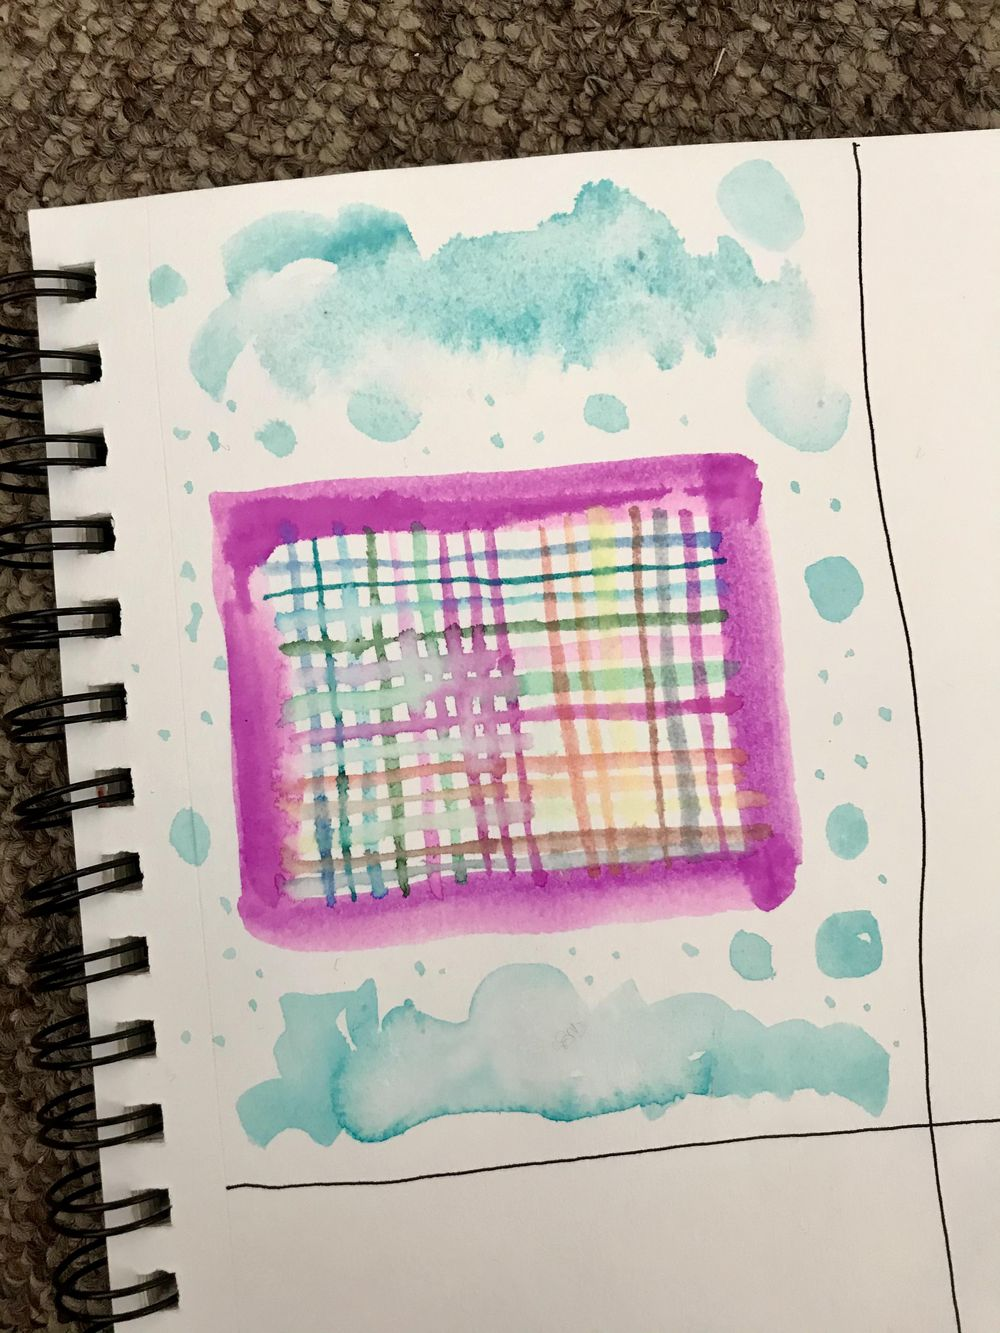 Sketchbook Magic class - image 5 - student project